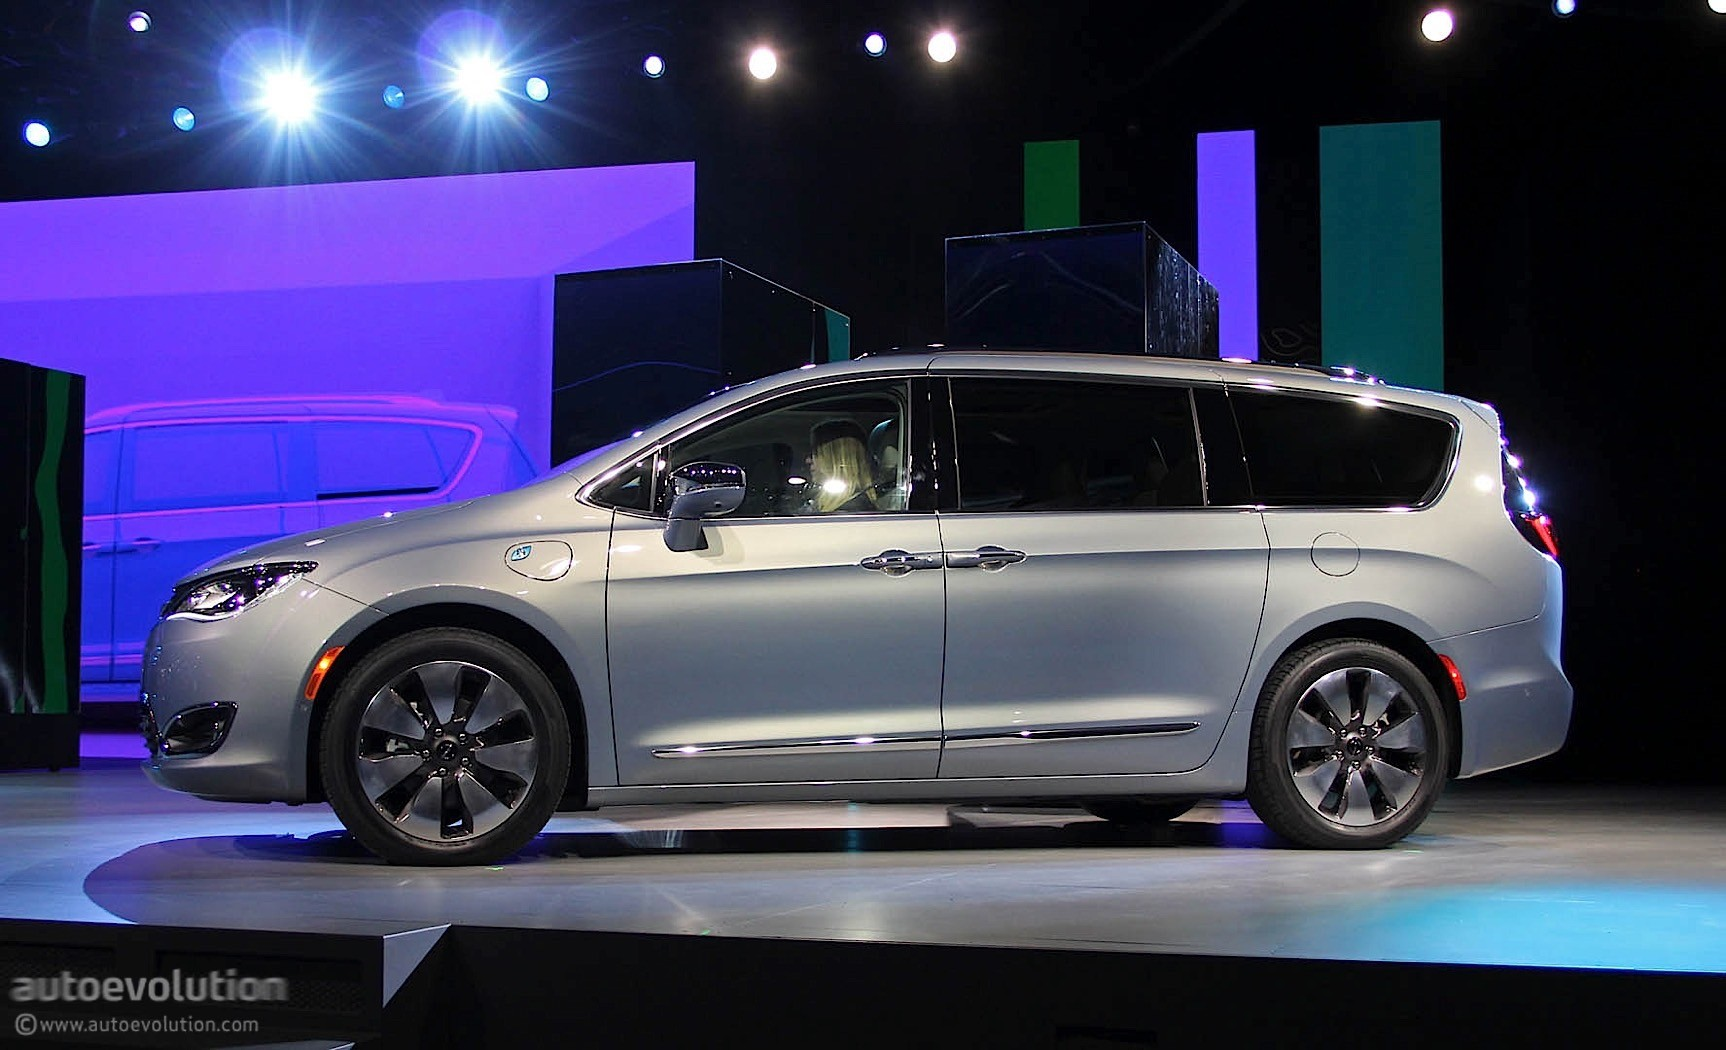 2017 chrysler pacifica scores impressive 28 mpg highway. Black Bedroom Furniture Sets. Home Design Ideas